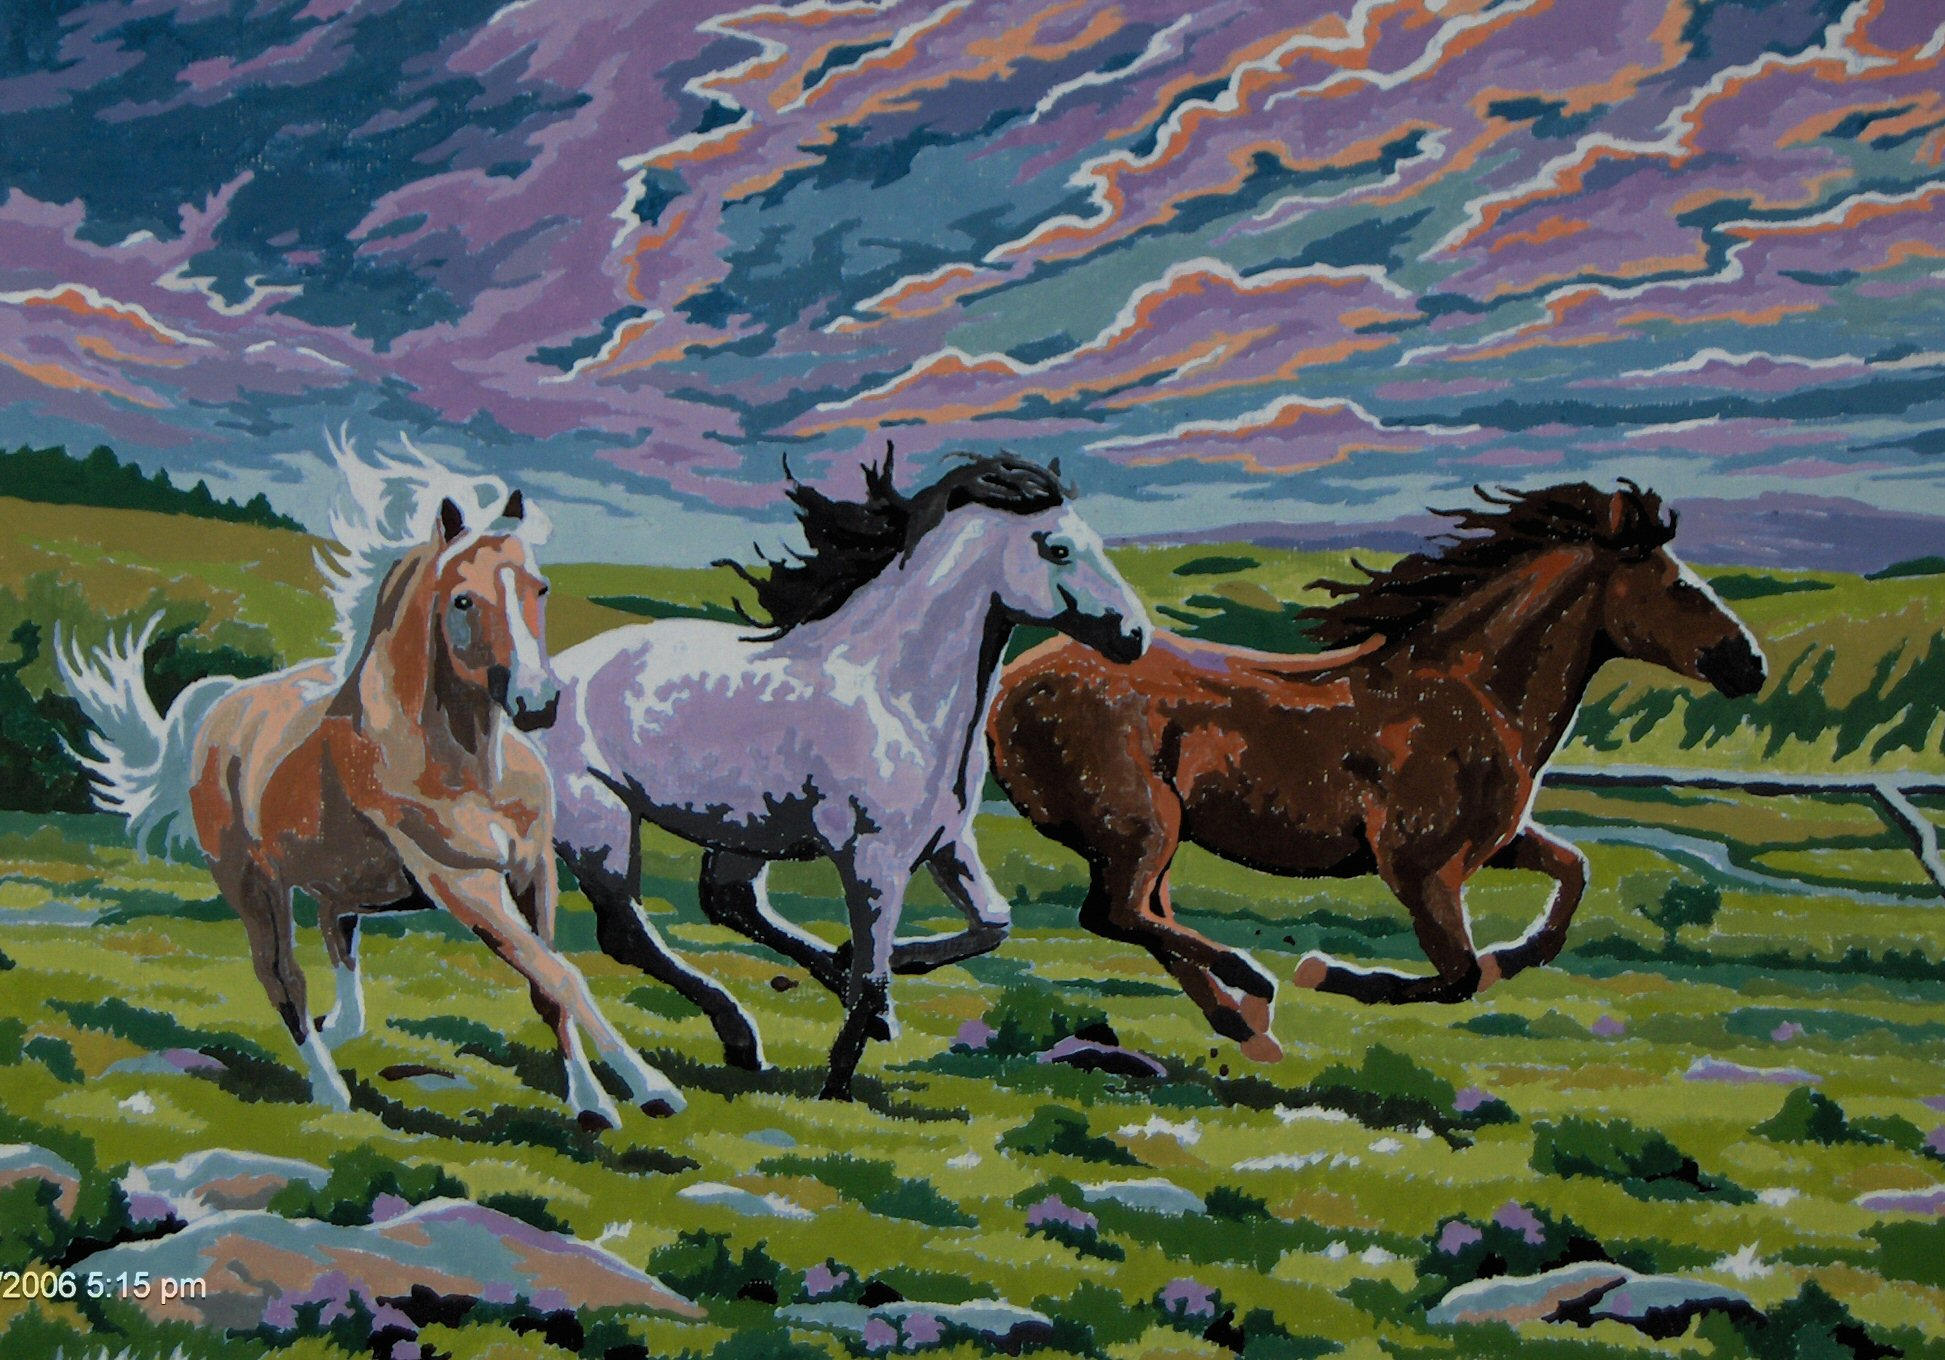 Running horses painting by Tallonis on DeviantArt